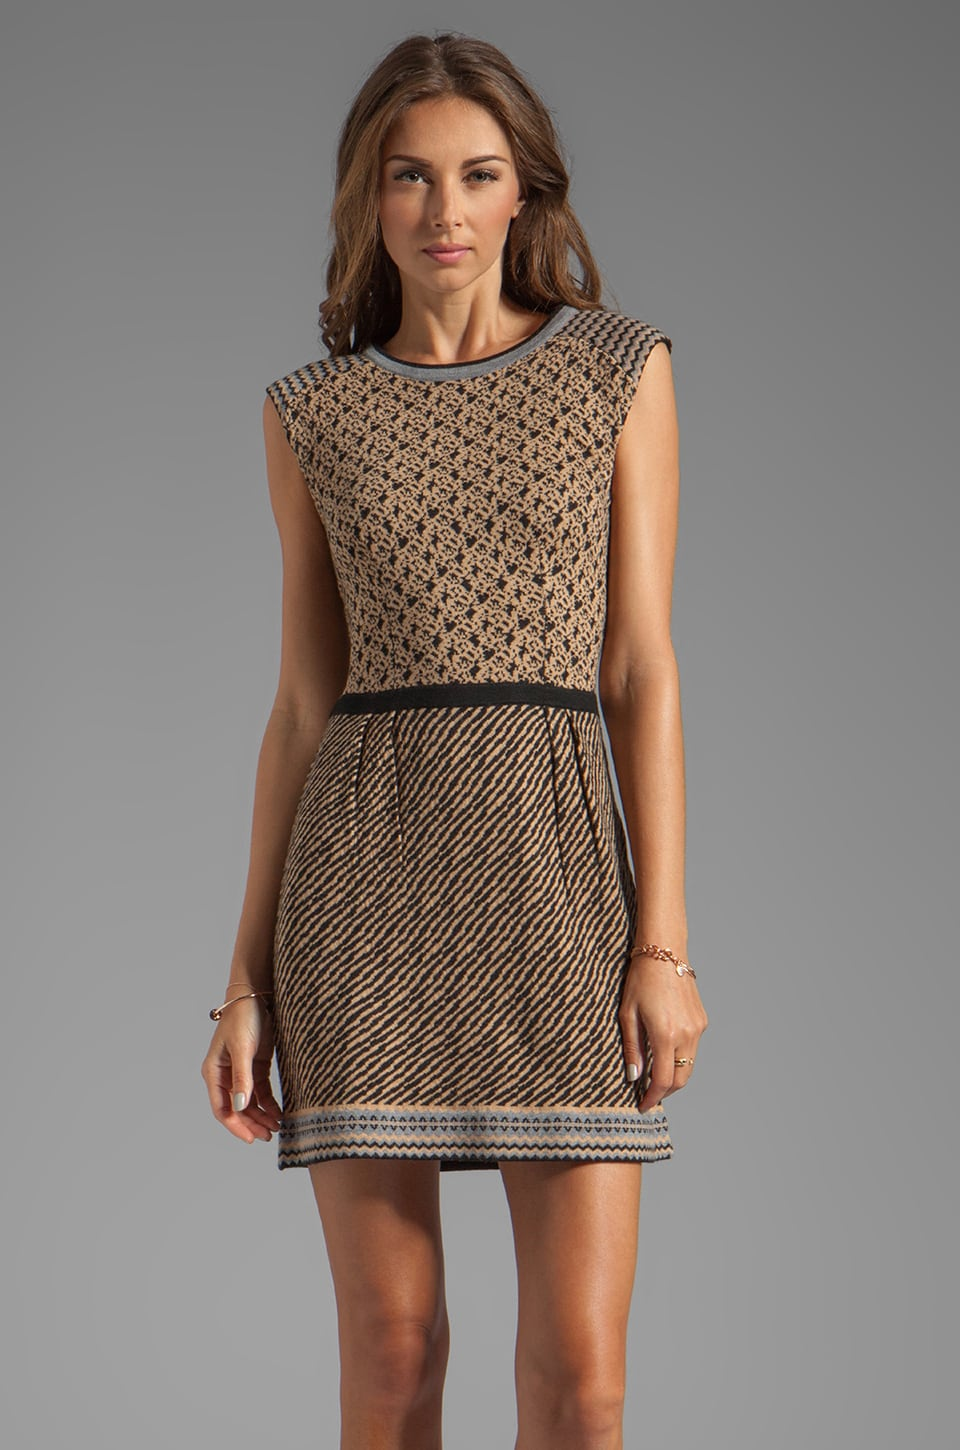 Nanette Lepore Meknes Knit Zanafi Dress in Camel Multi